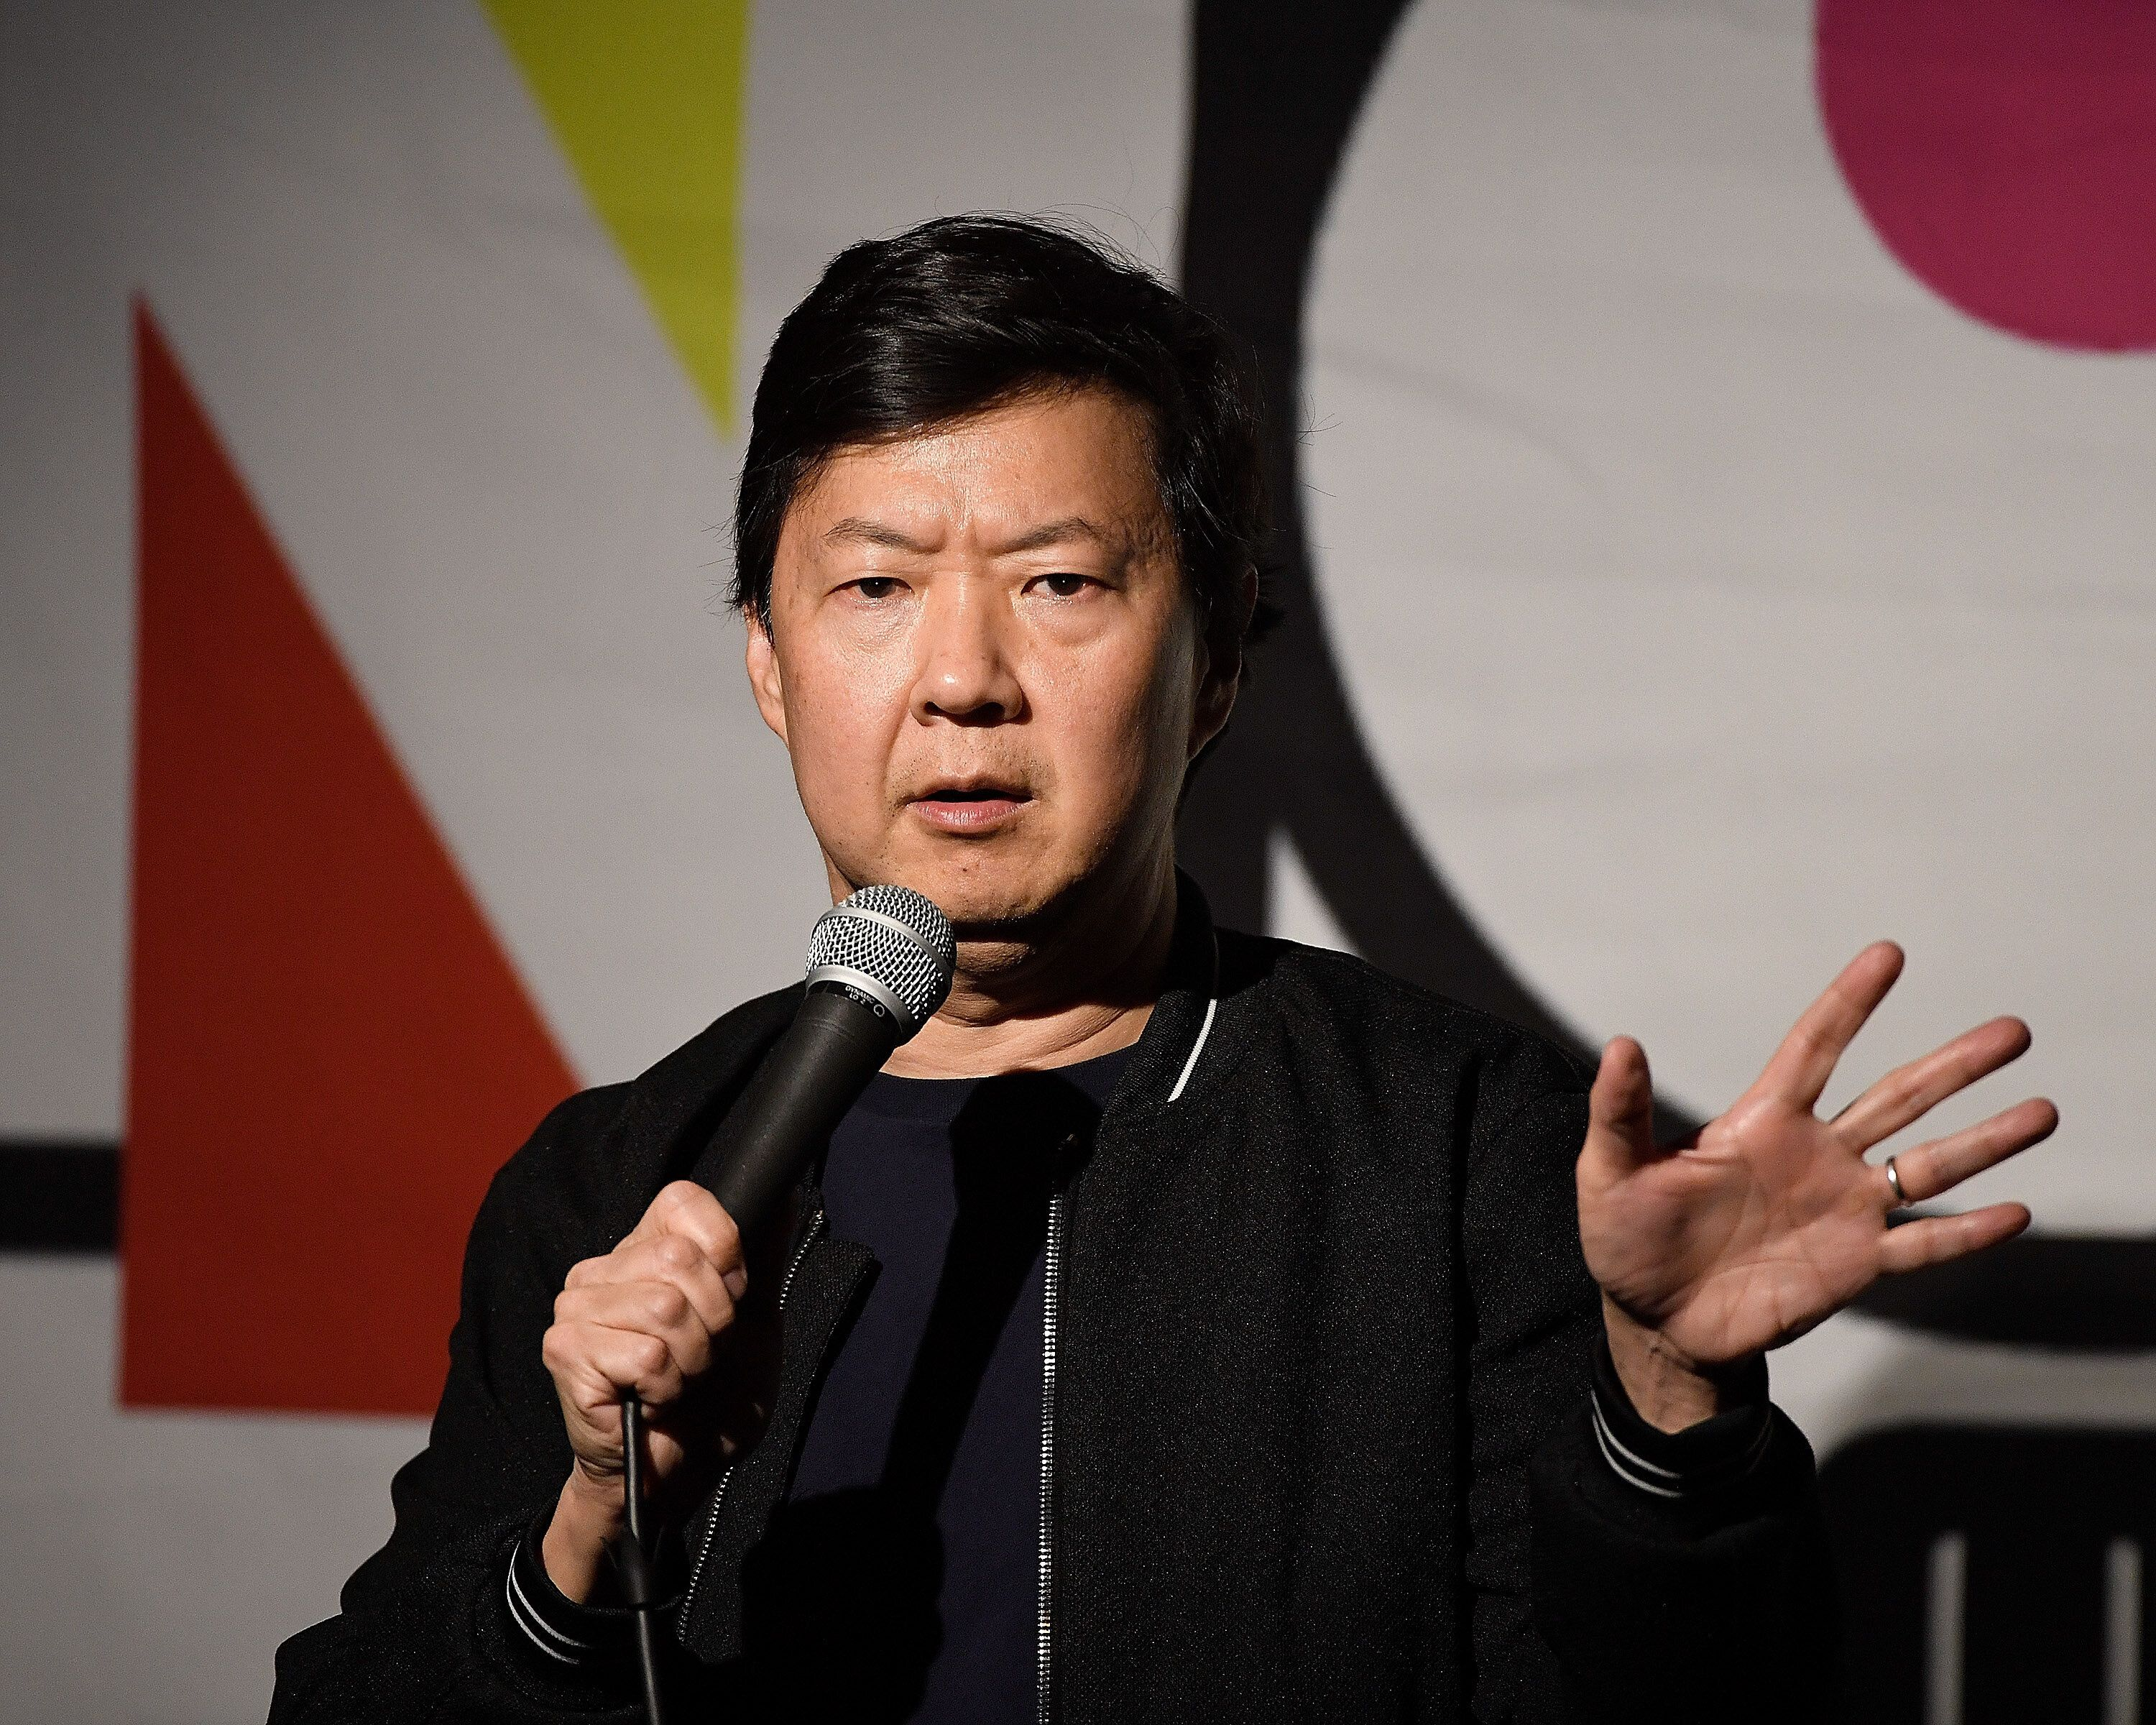 NORTH HOLLYWOOD, CA - MAY 02:  Comedian Ken Jeong performs during his appearance at the NoHo Comedy Festival at Ha Ha Cafe Comedy Club on May 2, 2019 in North Hollywood, California.  (Photo by Michael S. Schwartz/Getty Images)